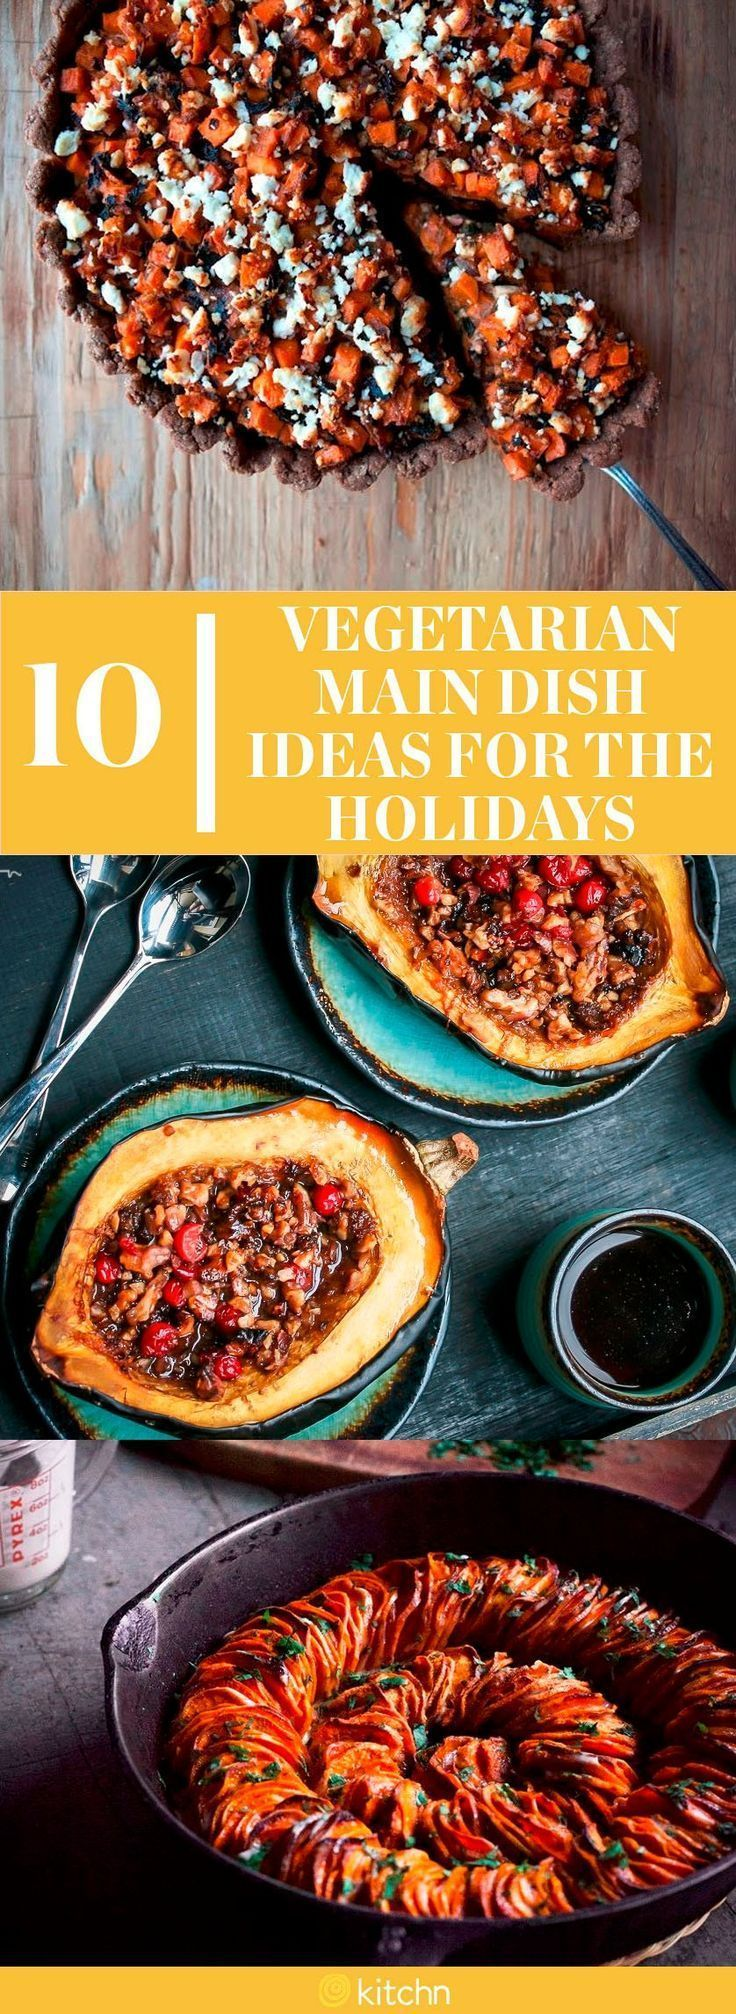 10 Vegetarian Main Dish Ideas and Recipes for Thanksgiving or Christmas. Who nee... - #christmas #ideas #recipes #thanksgiving #vegetarian - #ChristmasRecipes